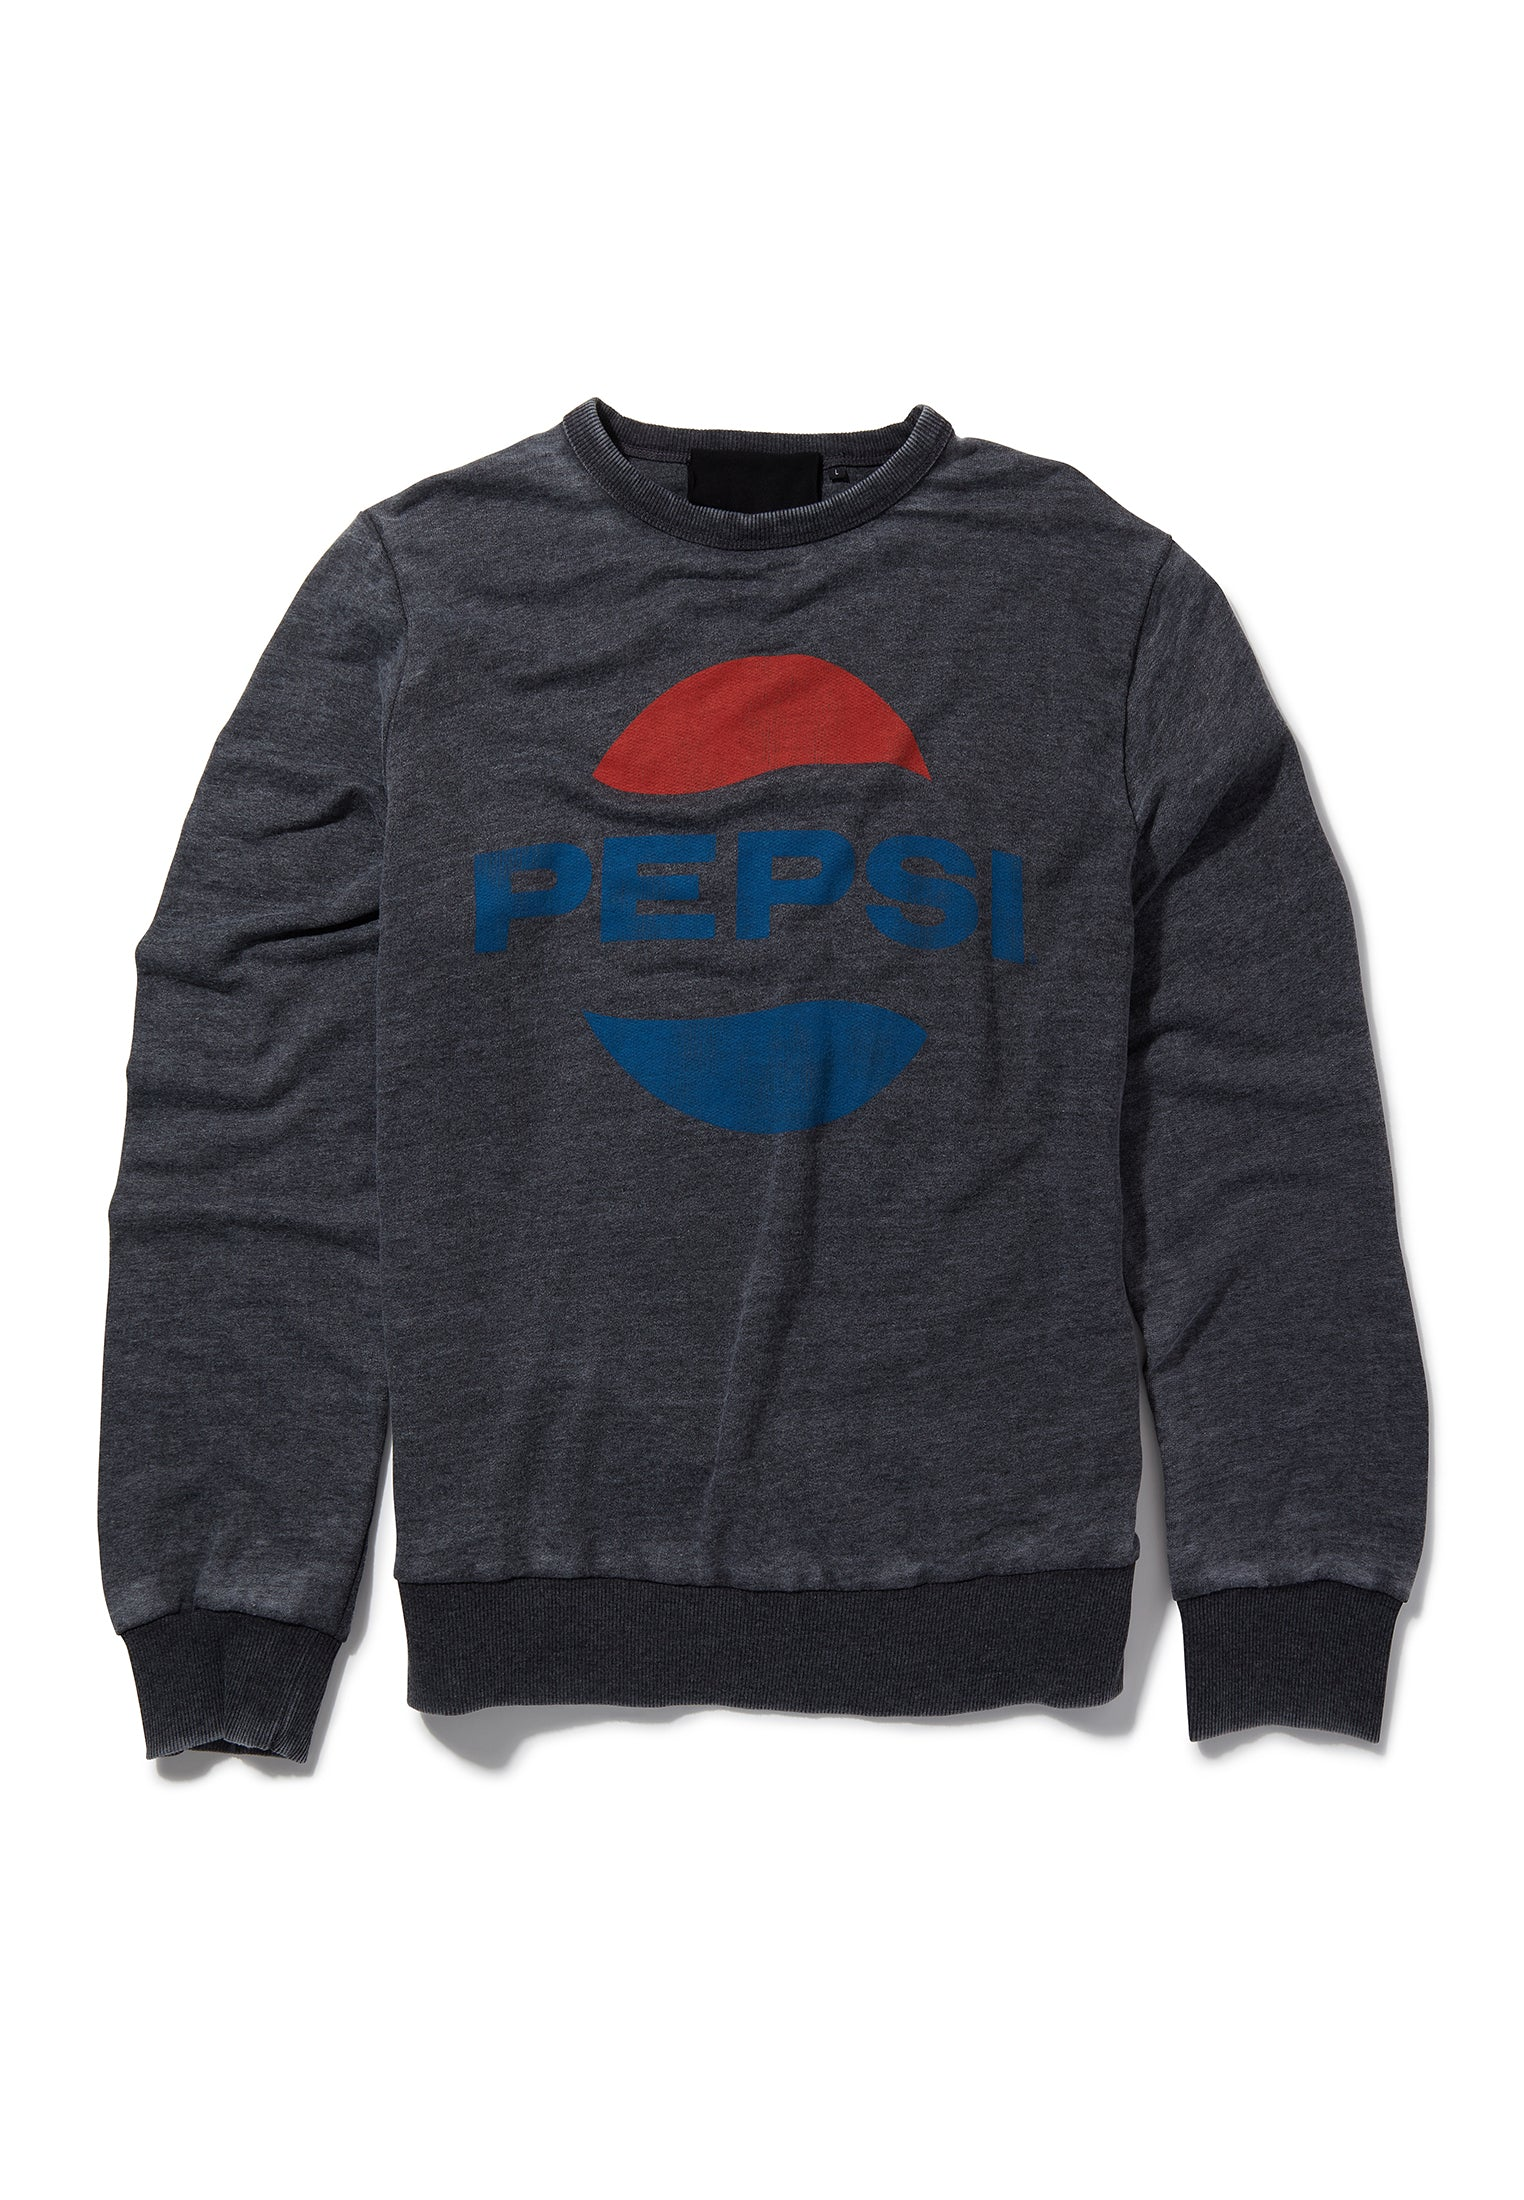 Recovered Pepsi Classic Oval Logo Charcoal Sweatshirt